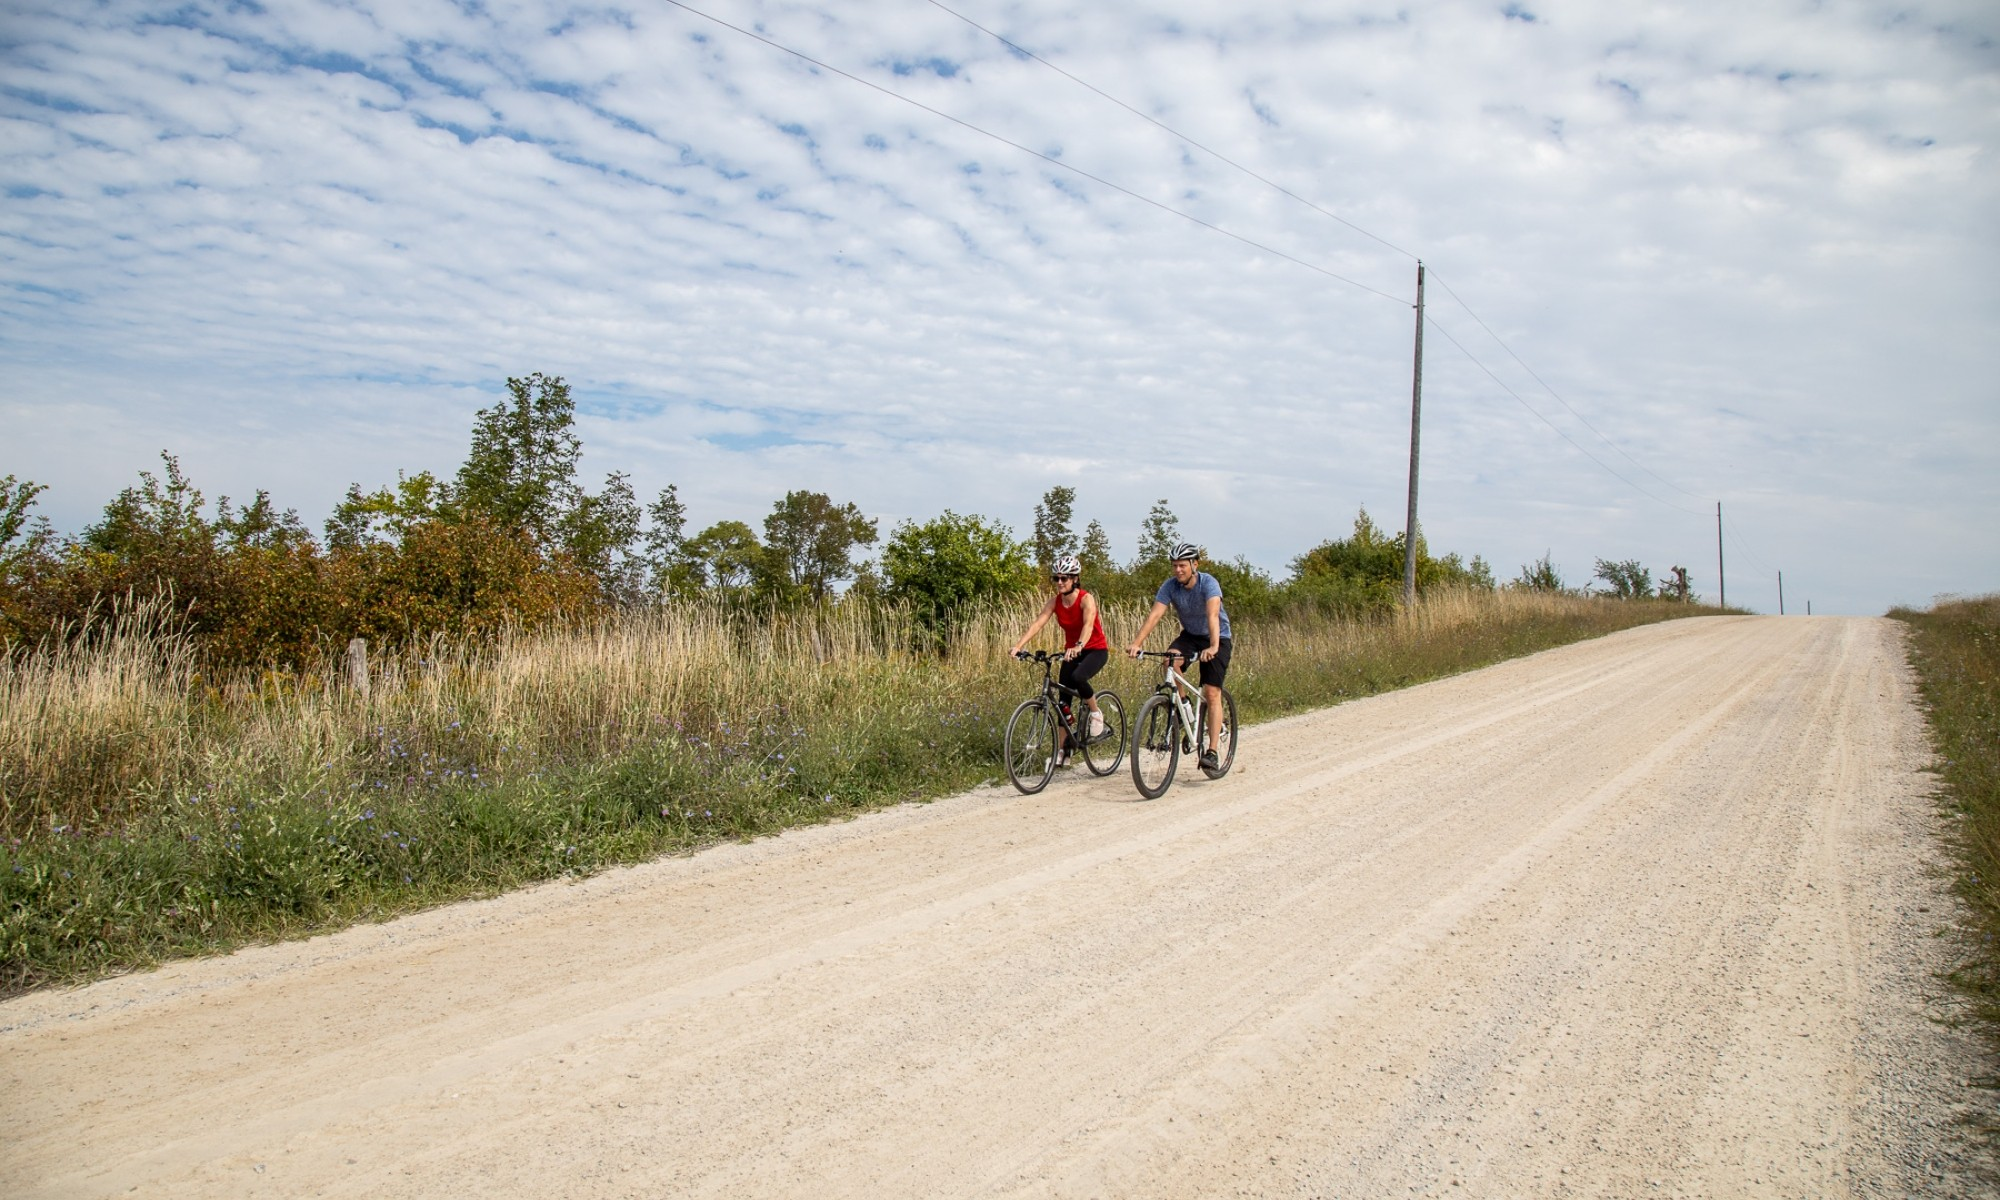 Two cyclists on a gravel road